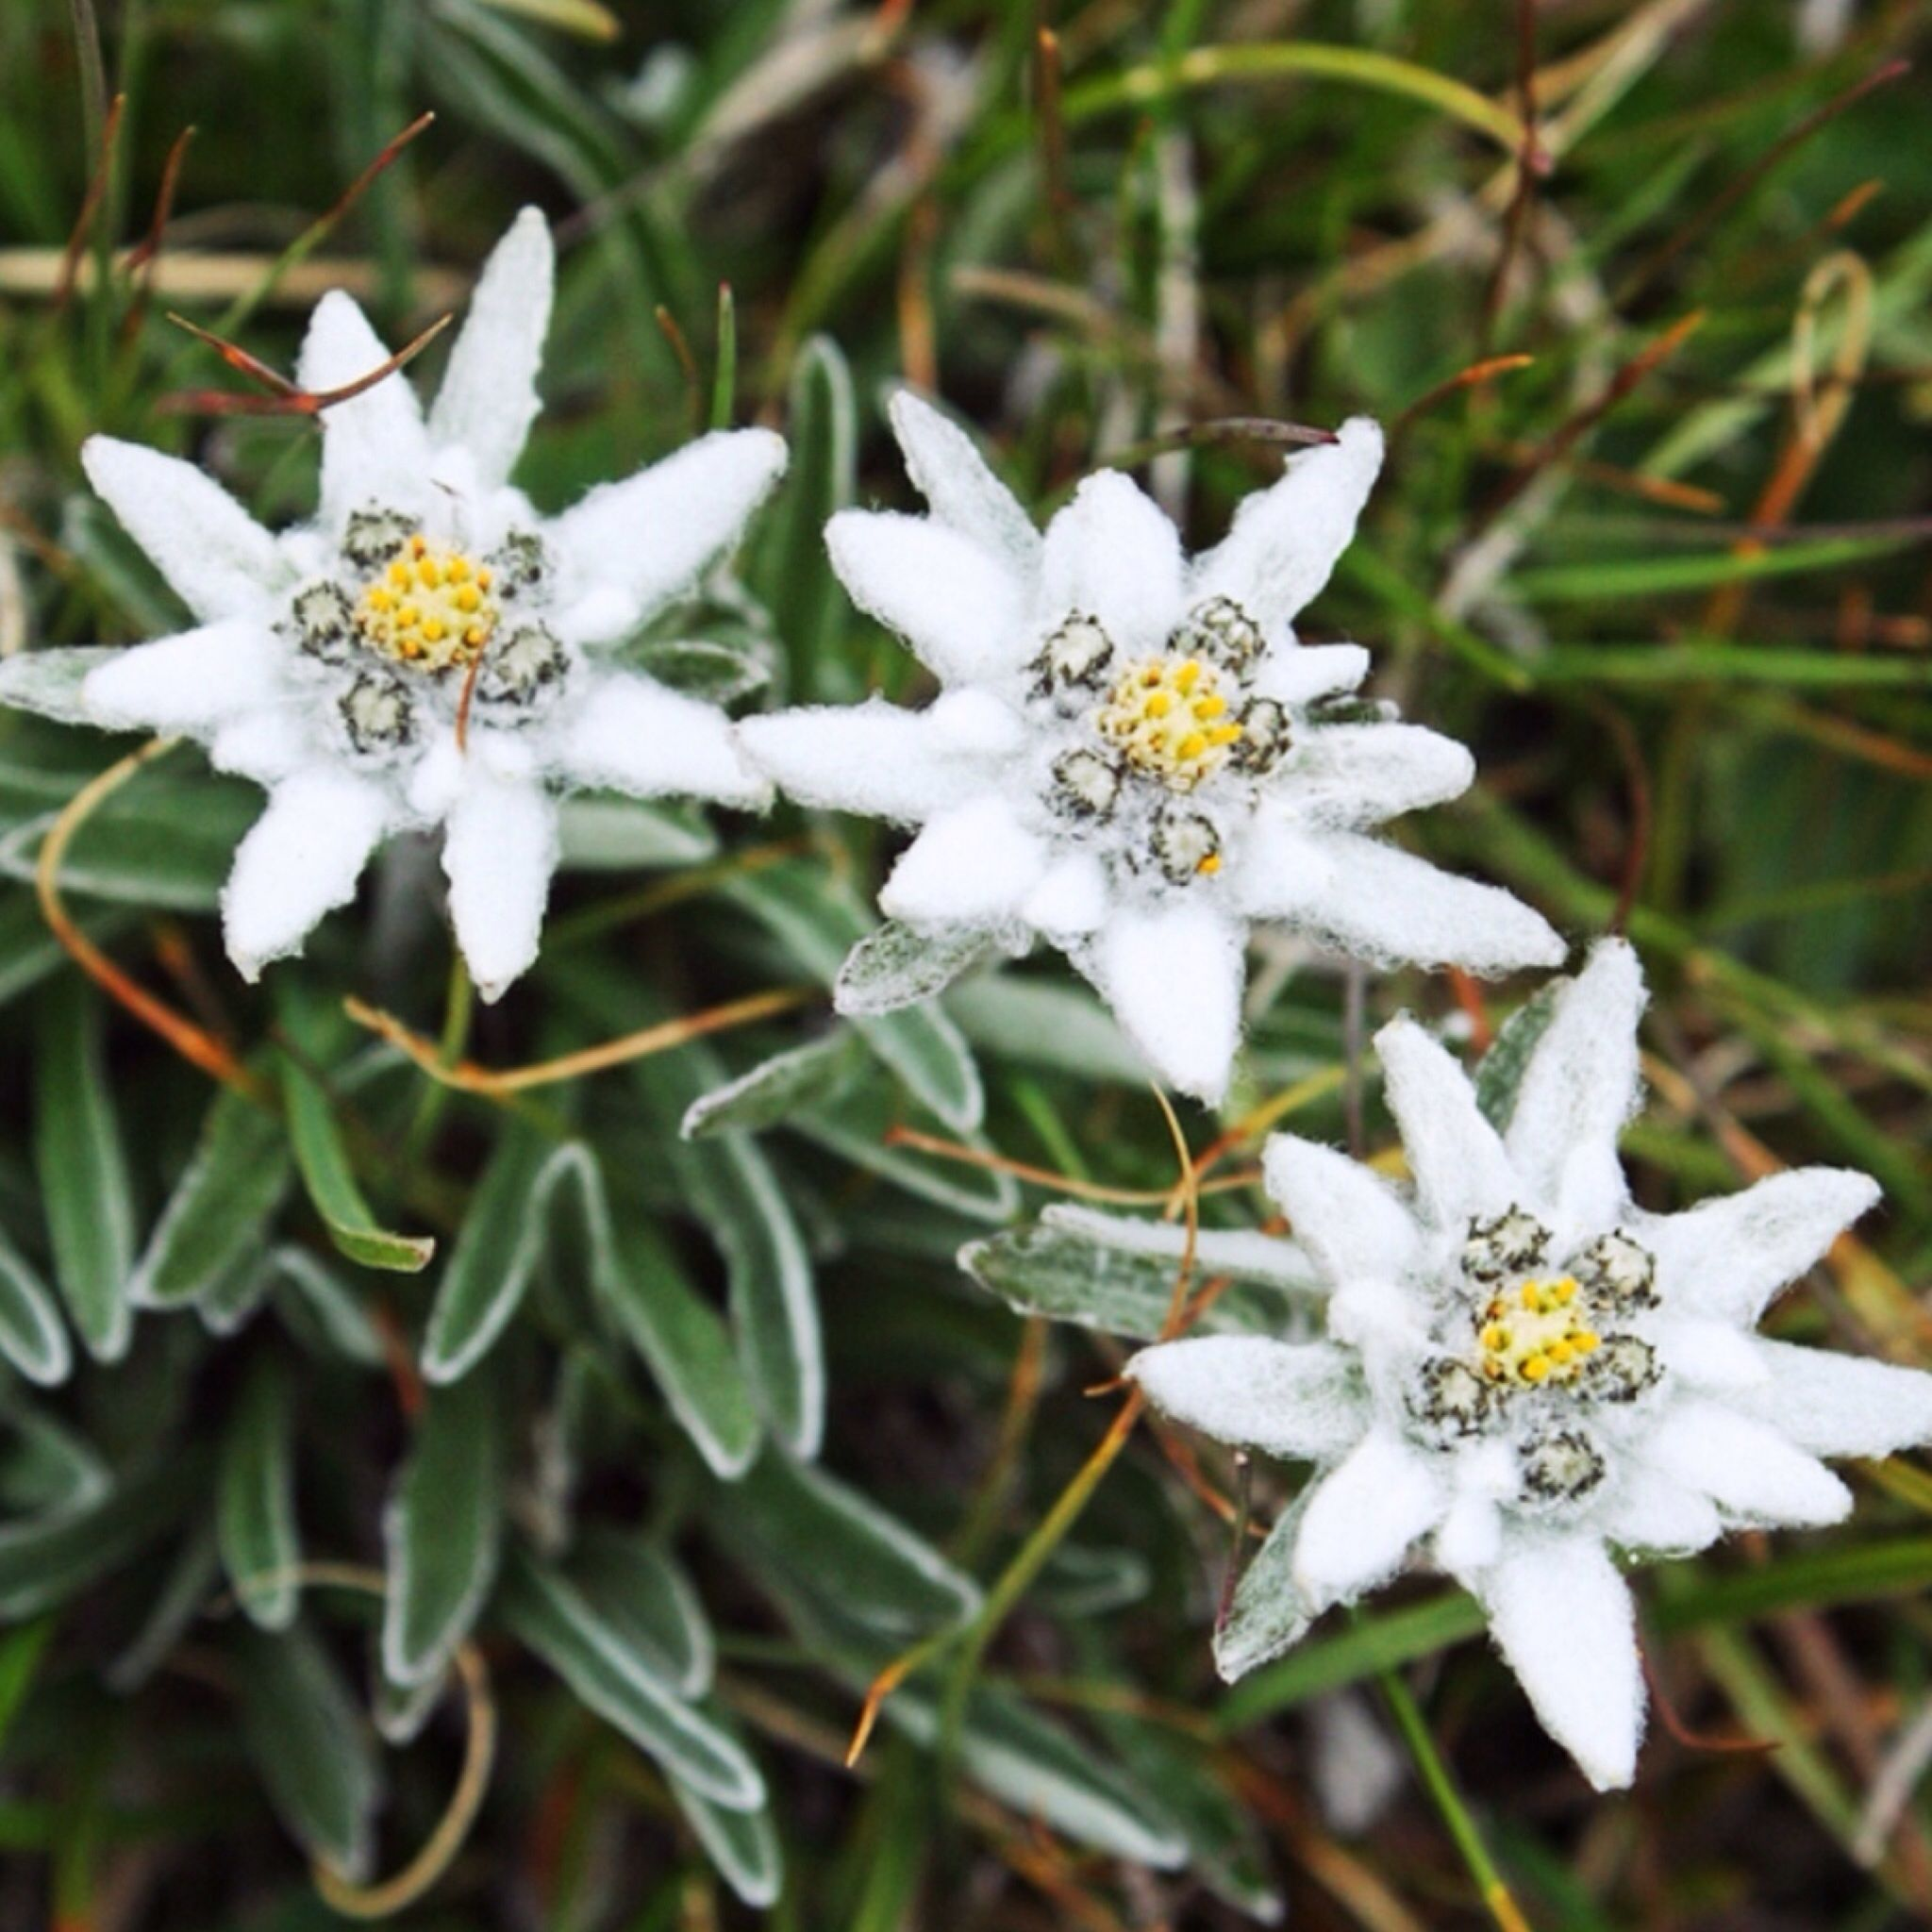 Edelweiss Is A Mountain Flower Associated With The Alps It Is Also The Inspiration For A Song In The Sound Edelweiss Flower Flower Photos Beautiful Flowers